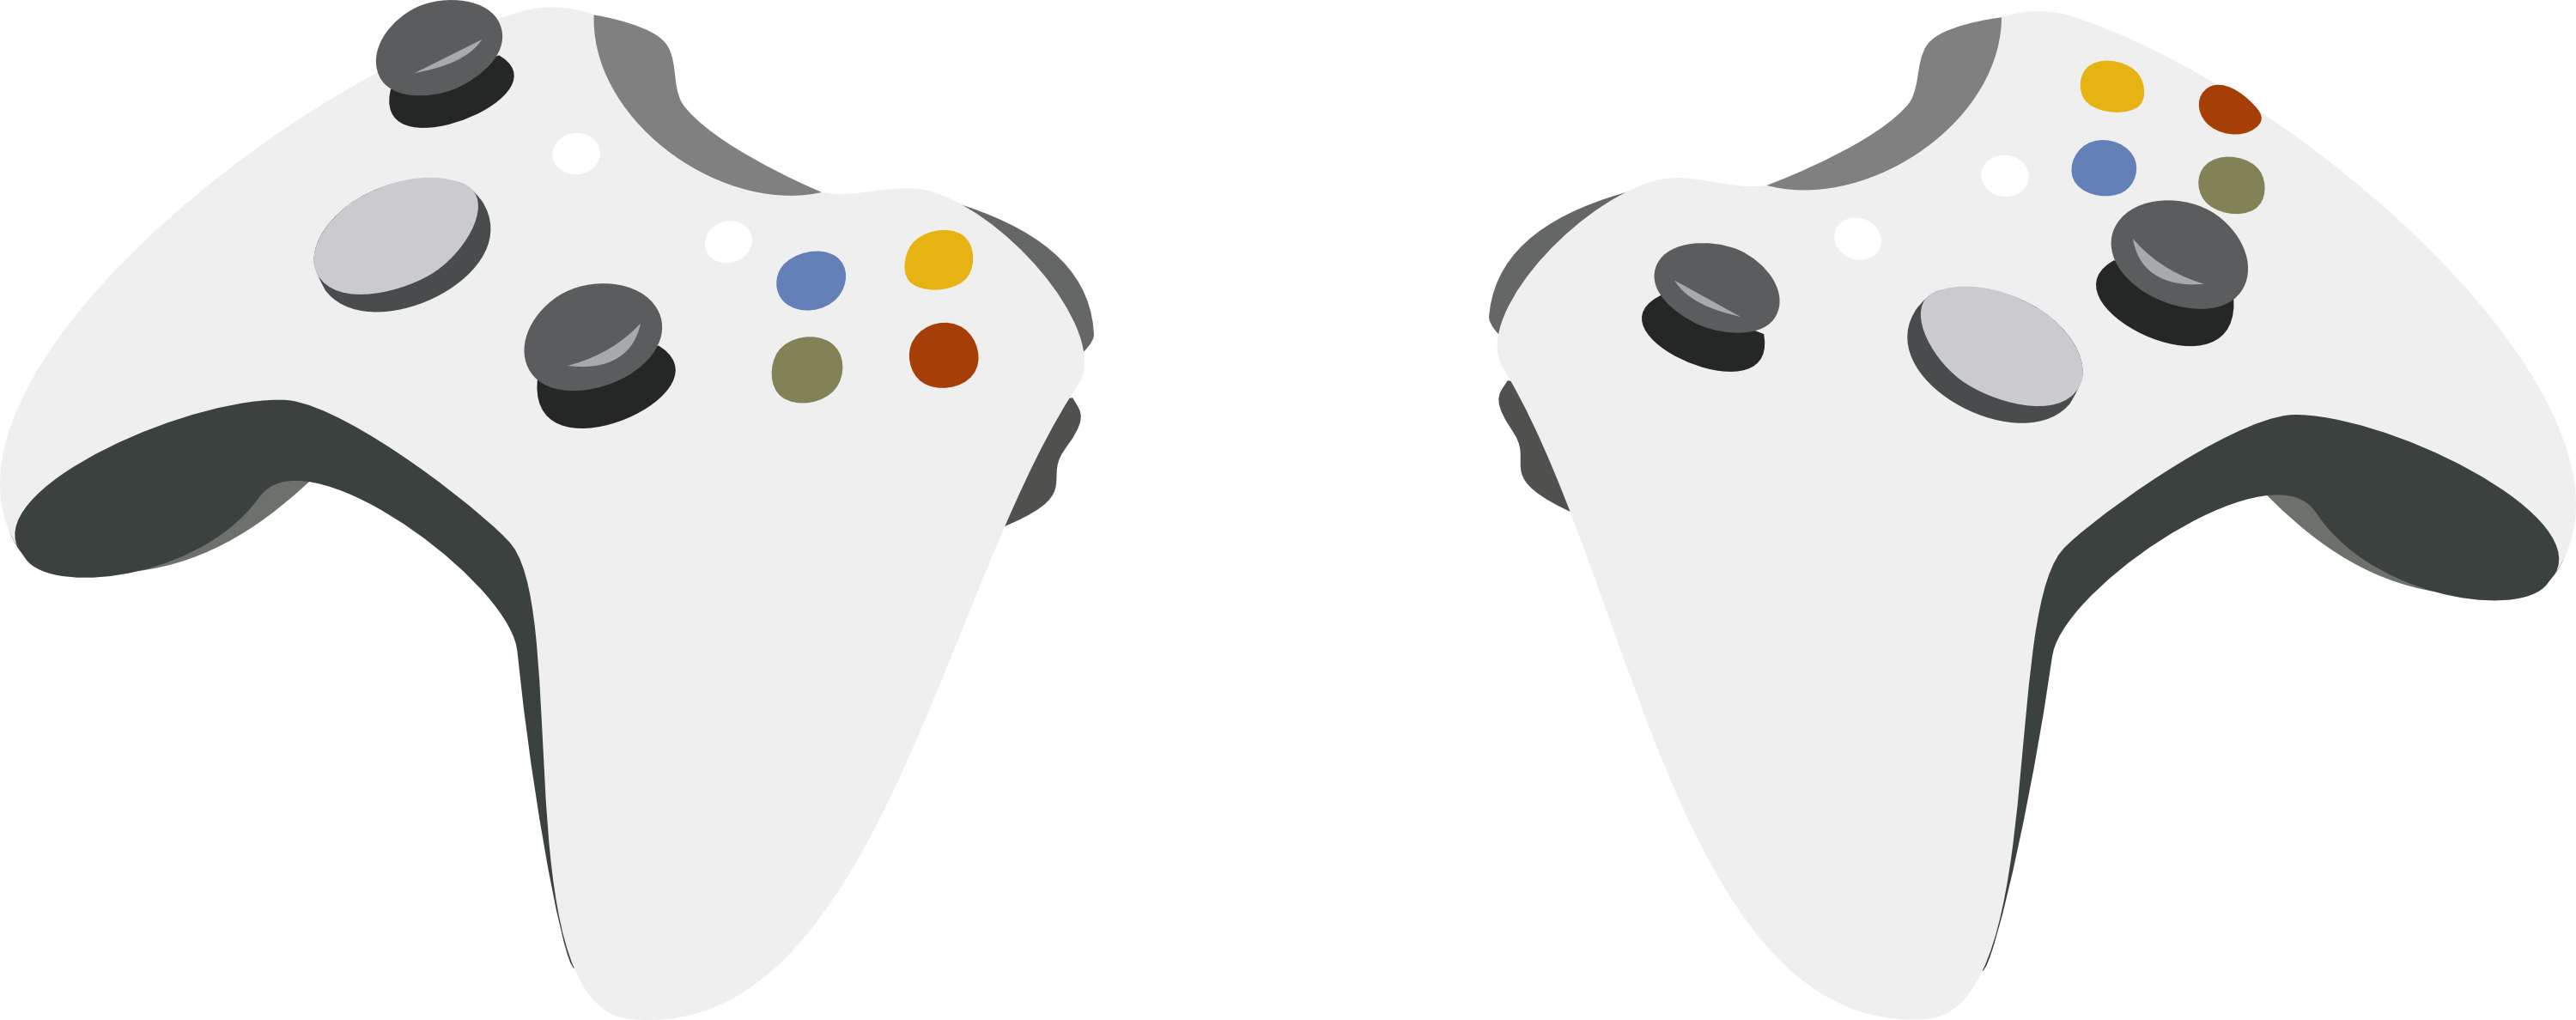 D Line Drawings Xbox : Xbox controller by muhmuhmuhimdead on deviantart